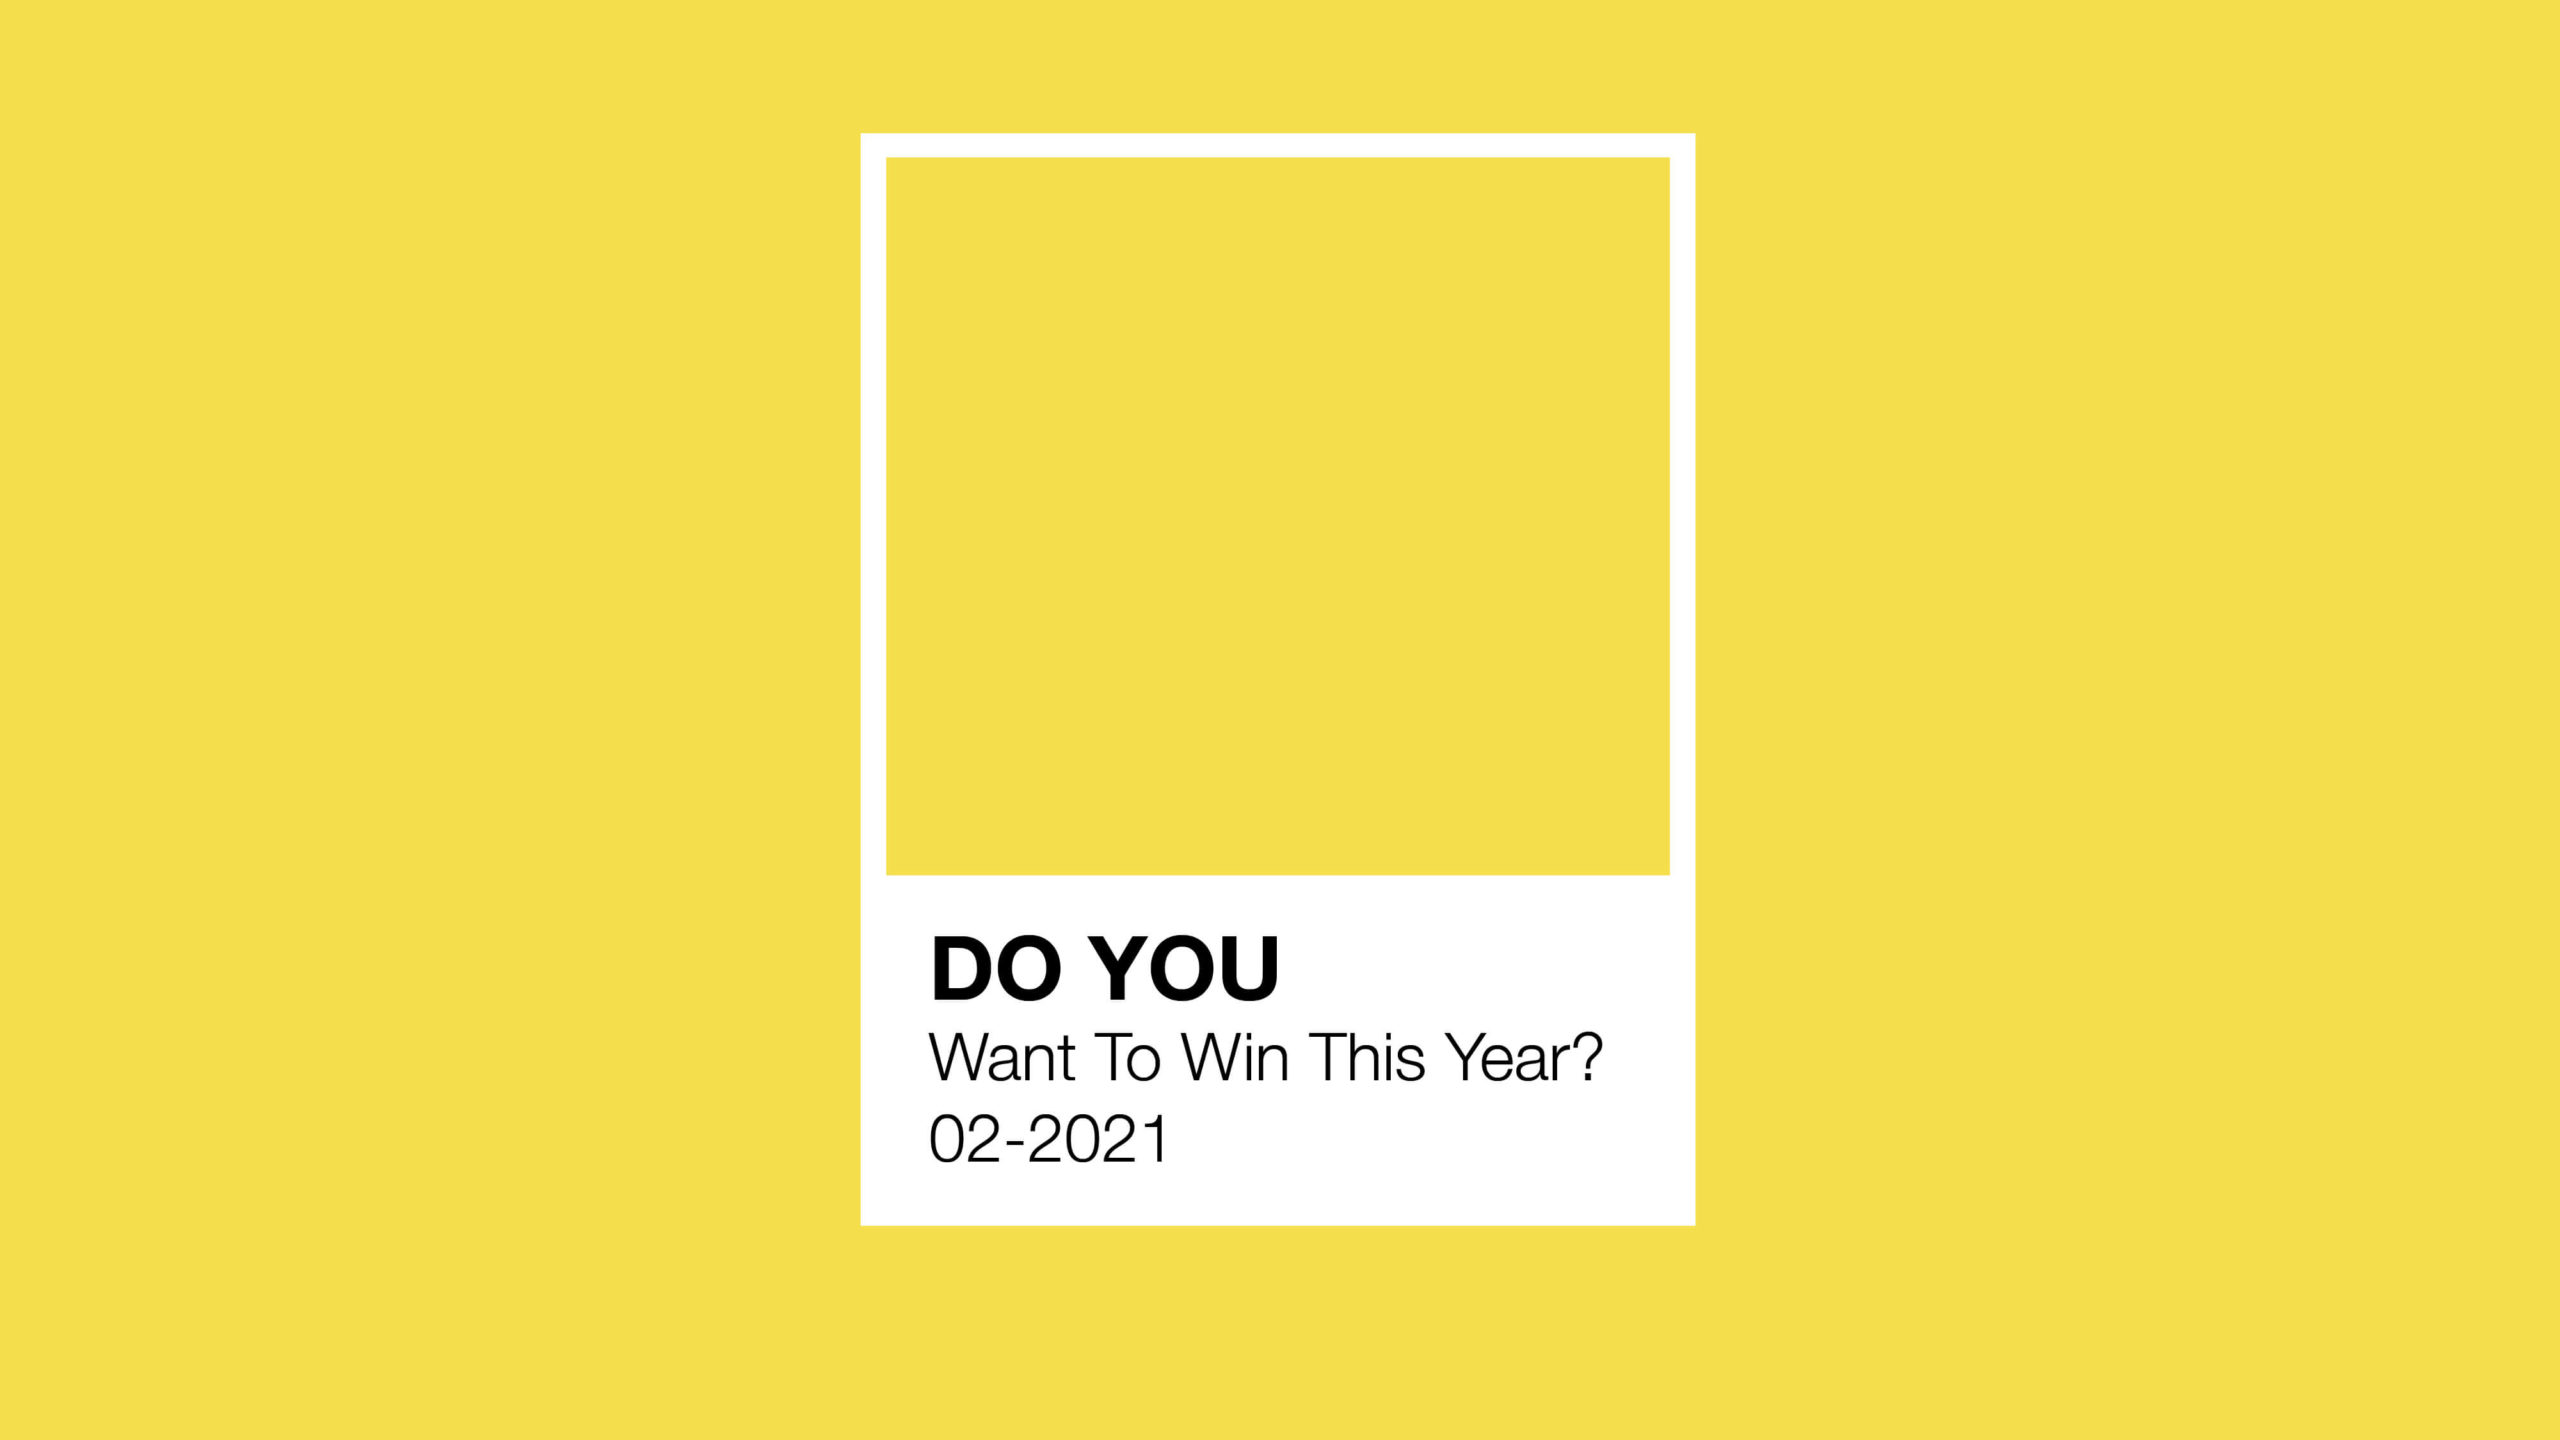 Do You Want To Win This Year?